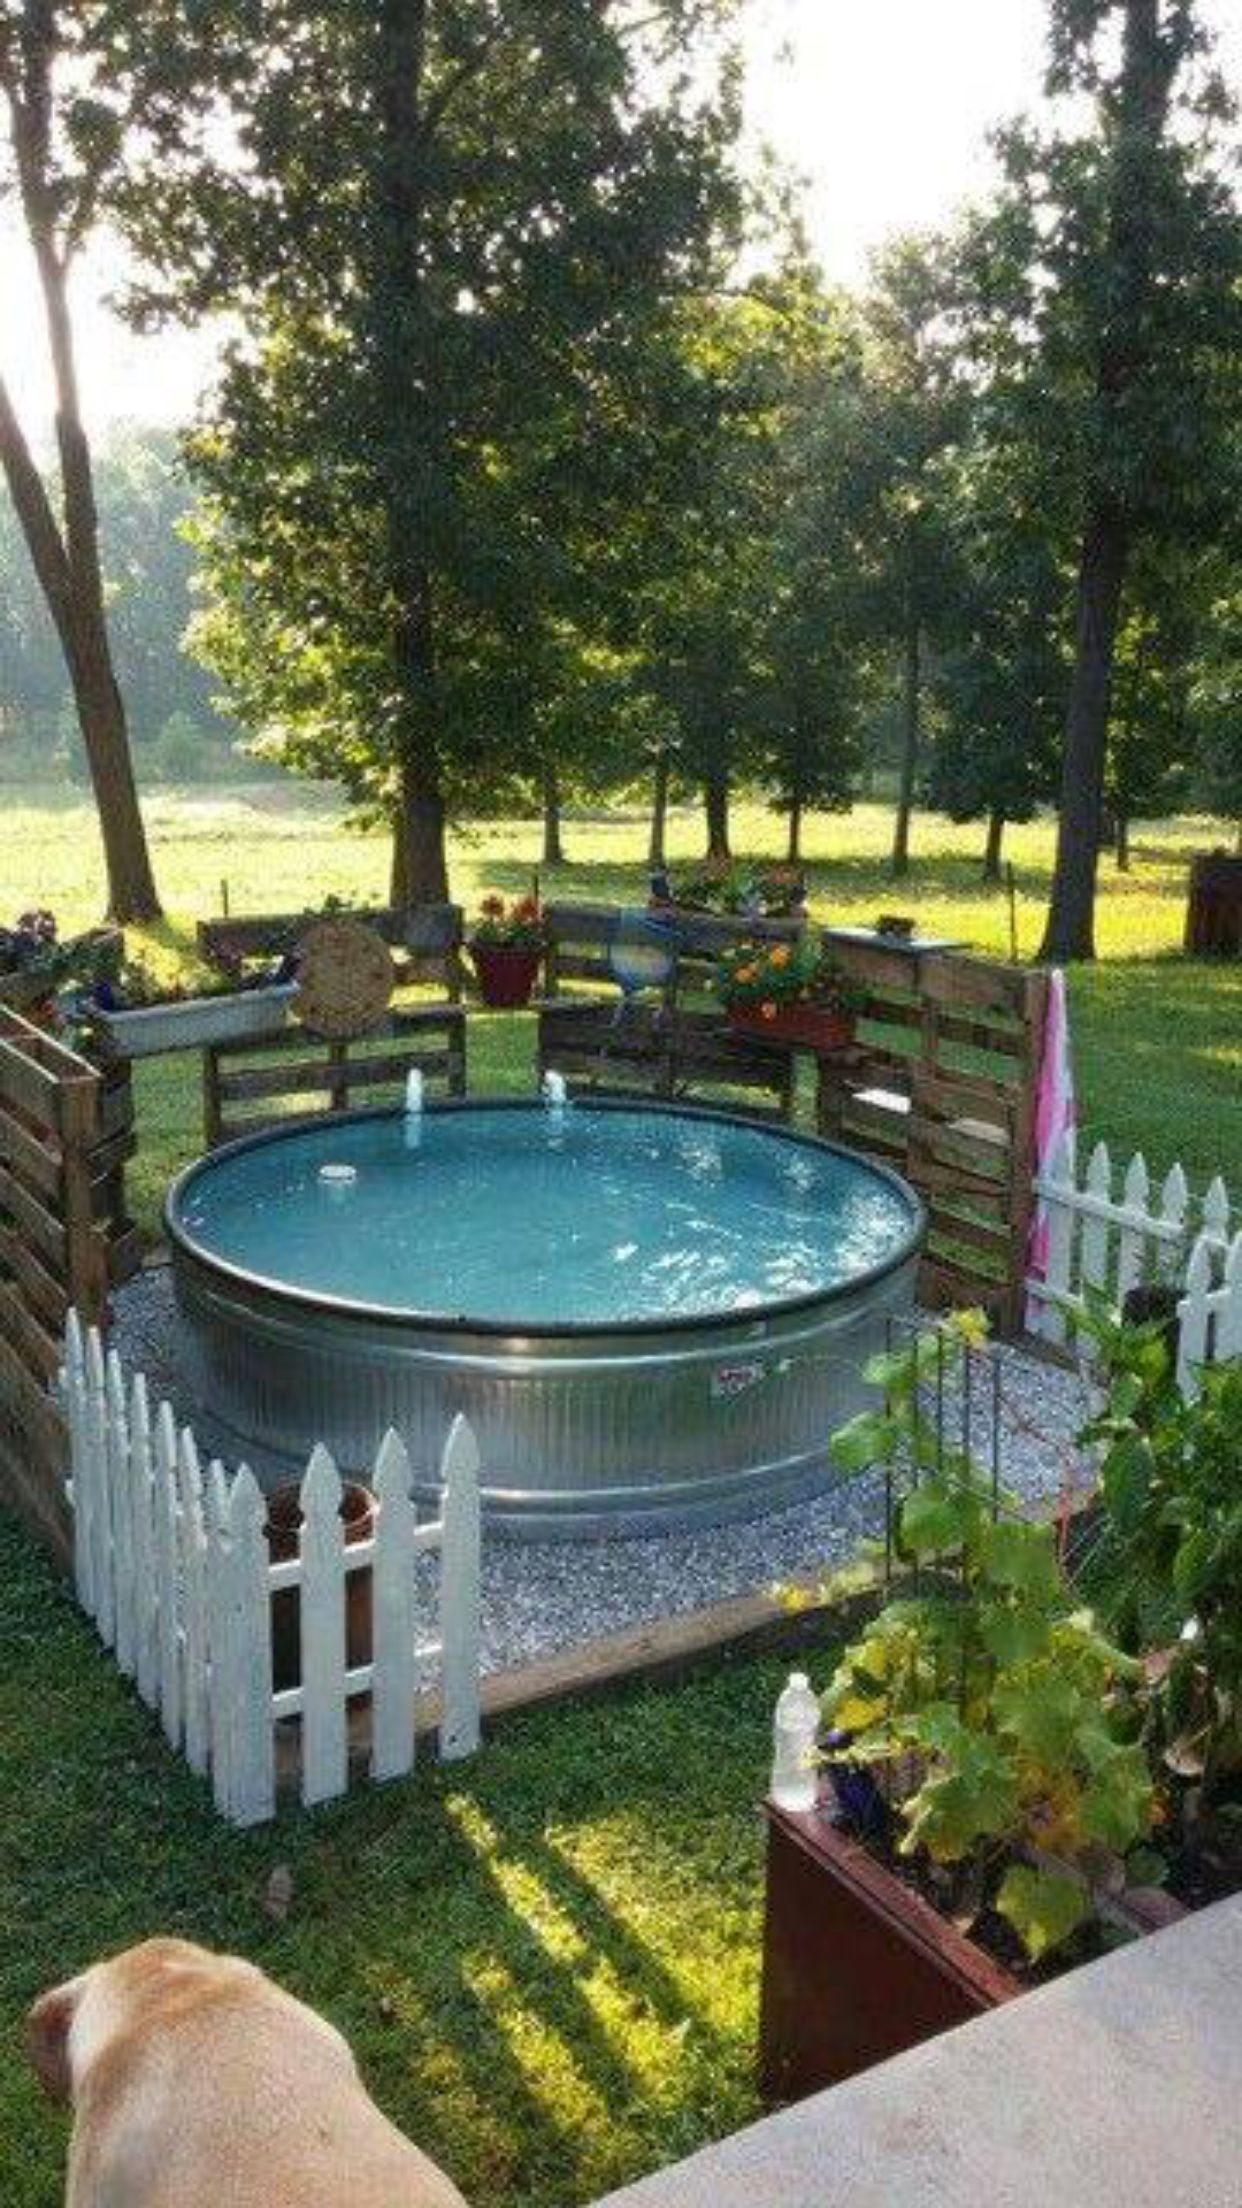 Hot tub water trough ideas Ideas for the House